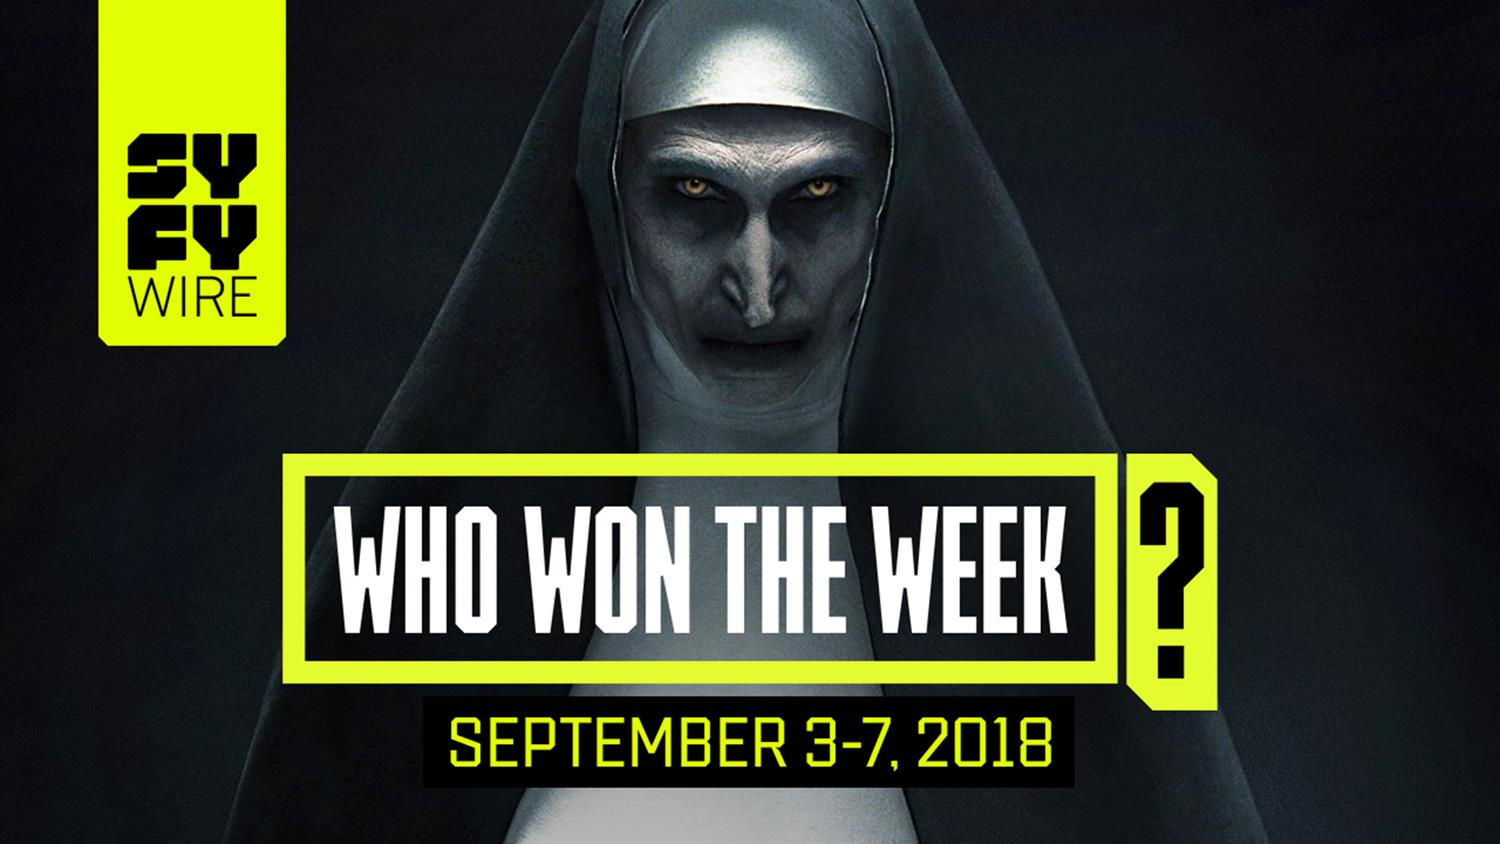 Spider-Man for PS4! The Nun! Captain Marvel! Who Won The Week For Sept 3-7